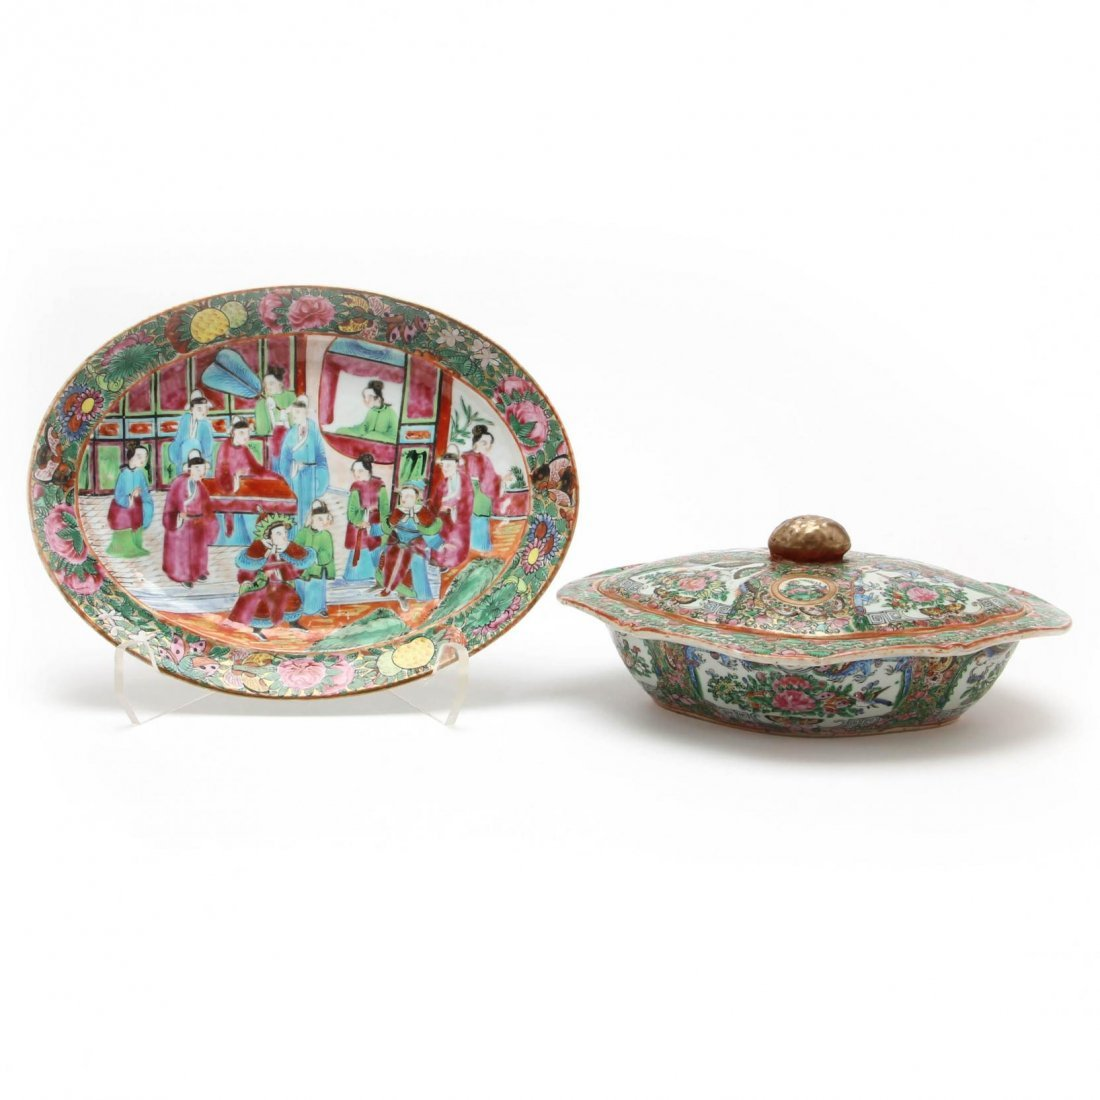 Two 19th Century Chinese Export Porcelain Items